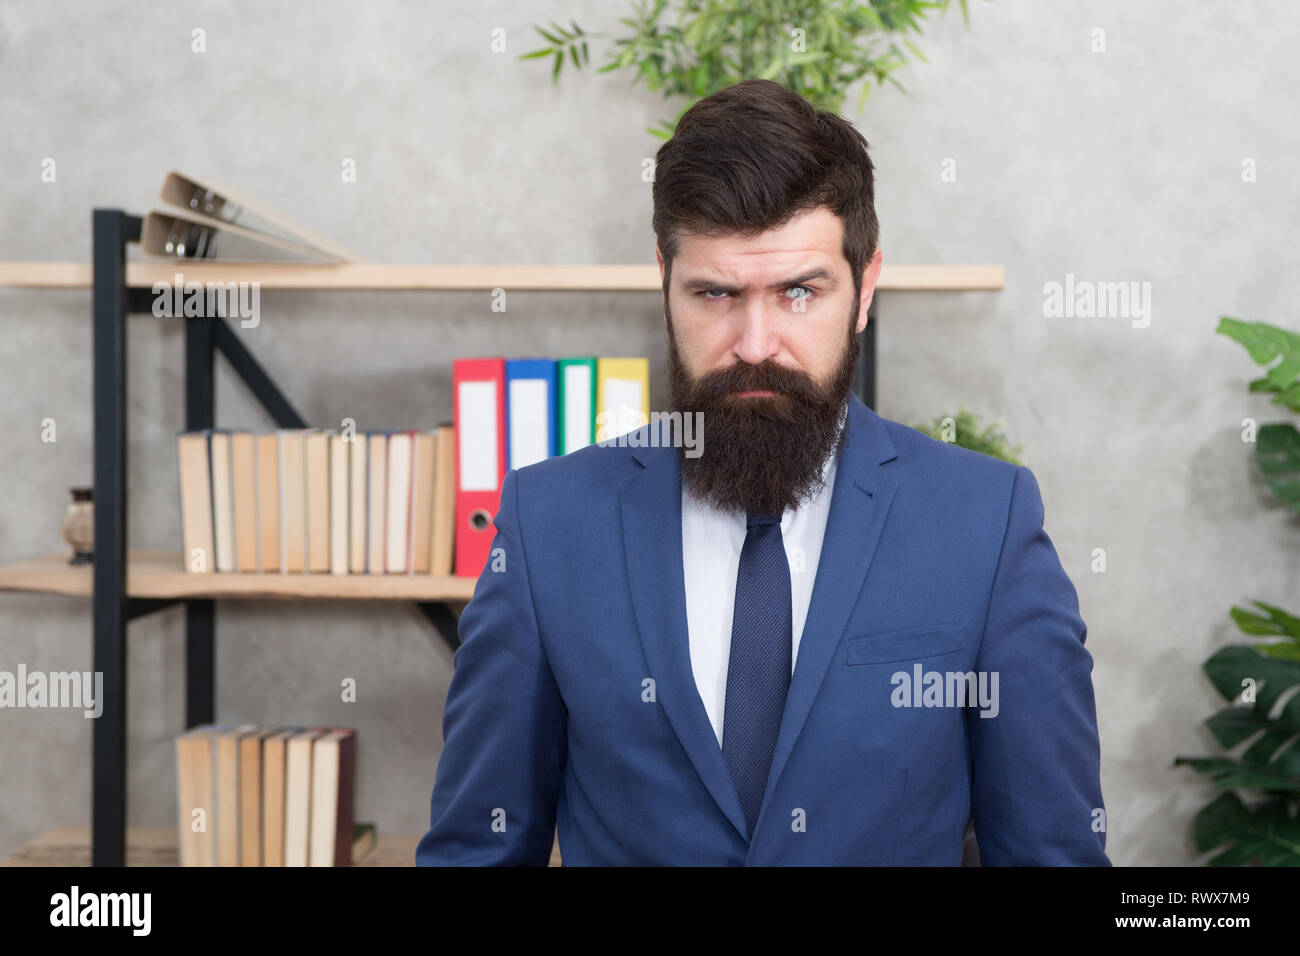 Mental process of choosing from set of alternatives. Hard decision. Business decision. Man bearded businessman thoughtful face solving problem making decision. Decision making is part of management. - Stock Image